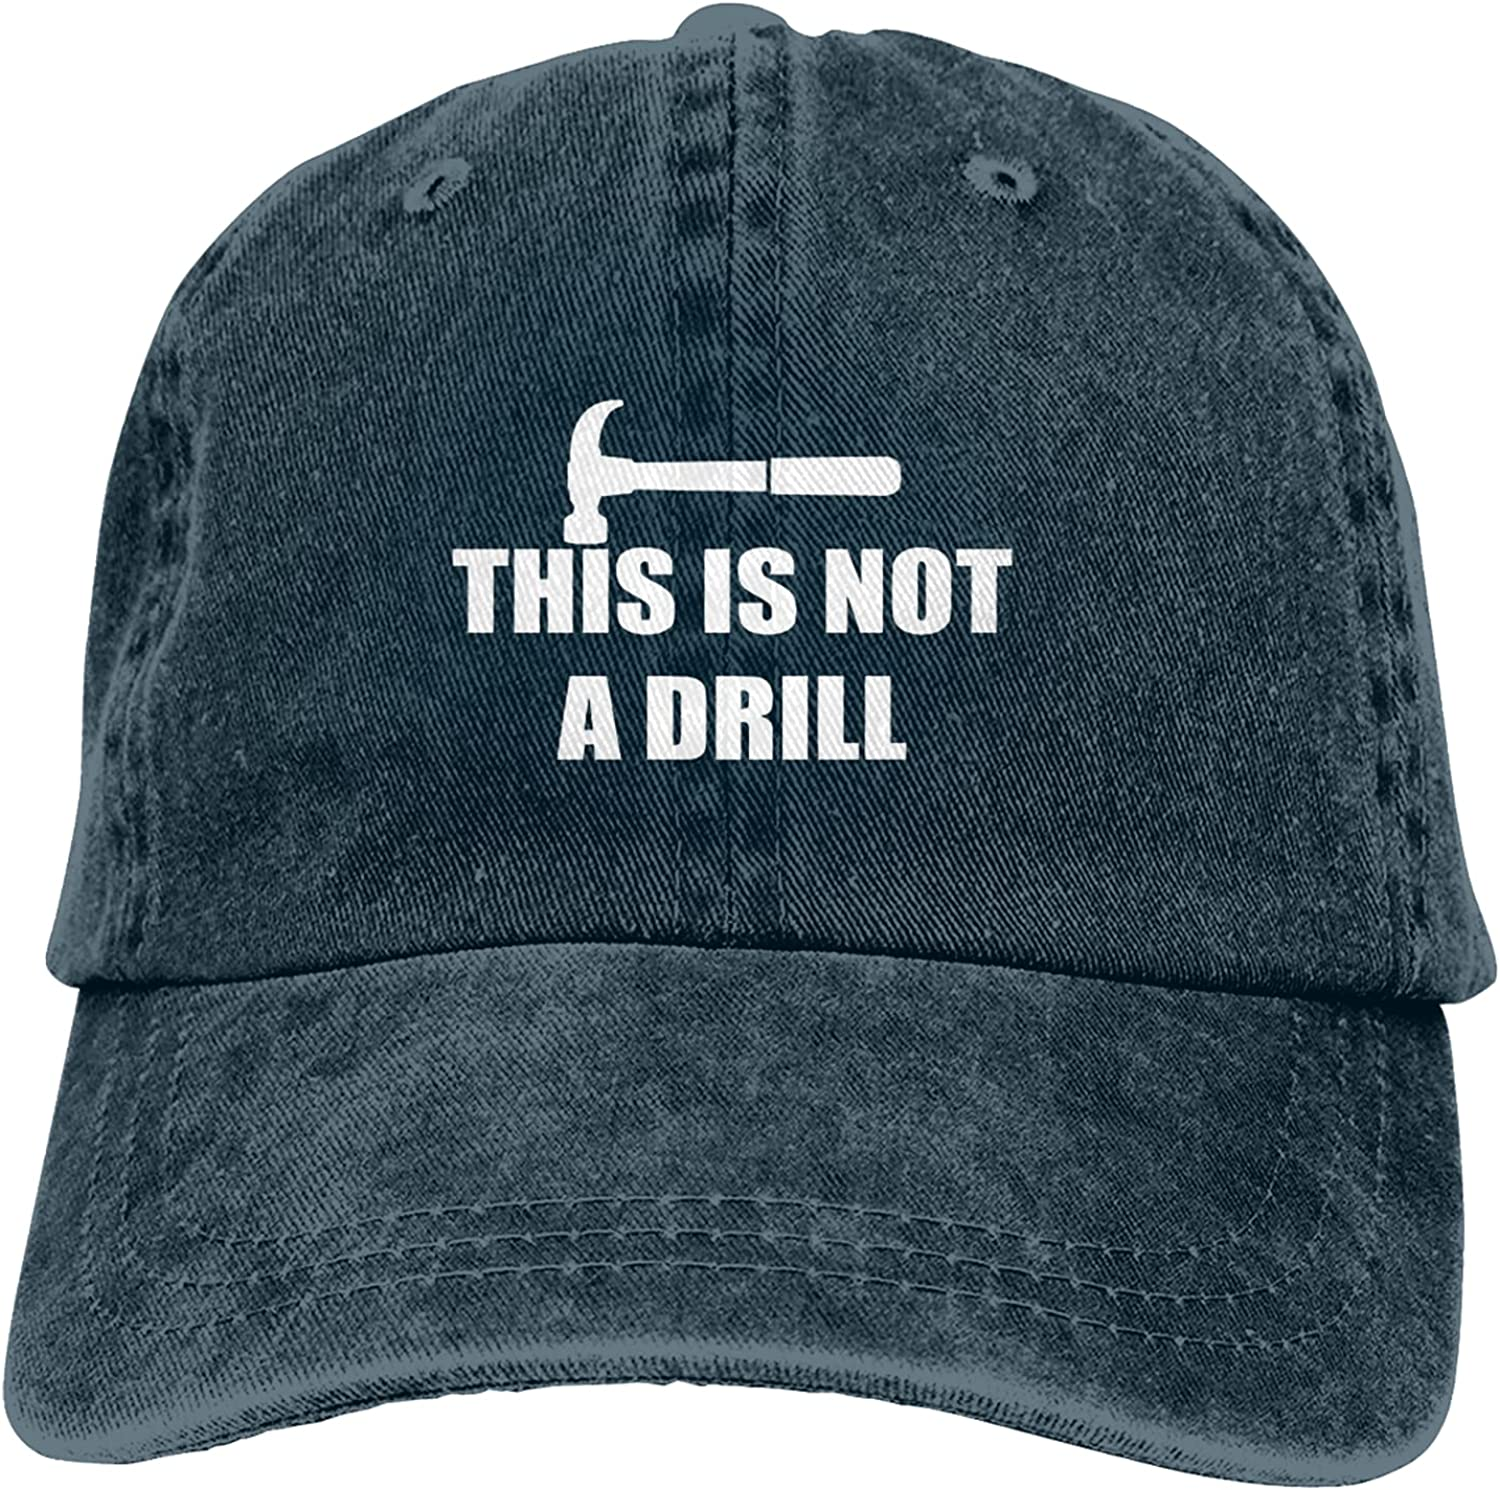 This is Not A Drill Hat, Adjustable Baseball Cap Washed Cotton Trucker Black Hat